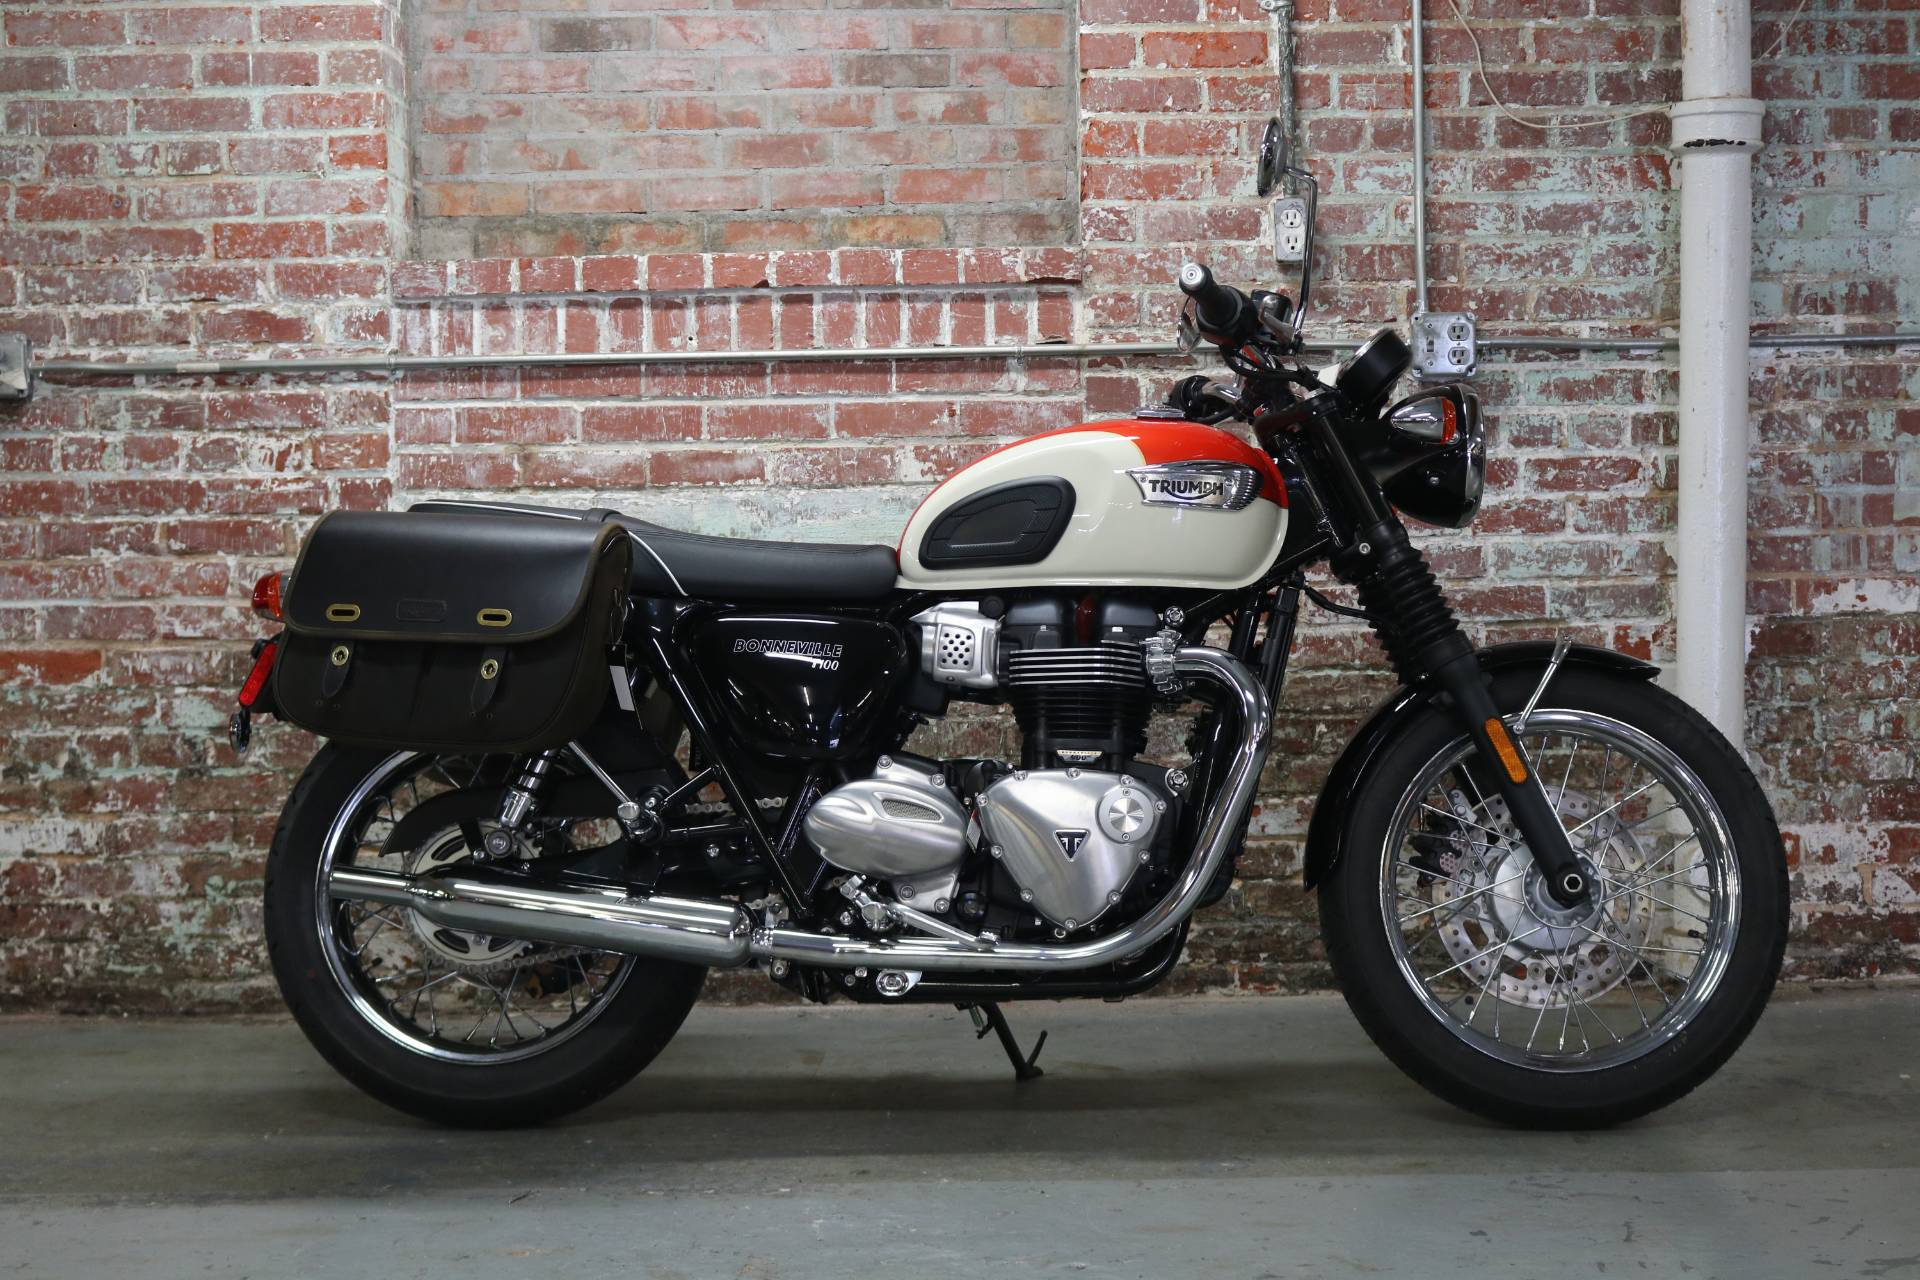 New 2018 Triumph Bonneville T100 Motorcycles In Greensboro Nc